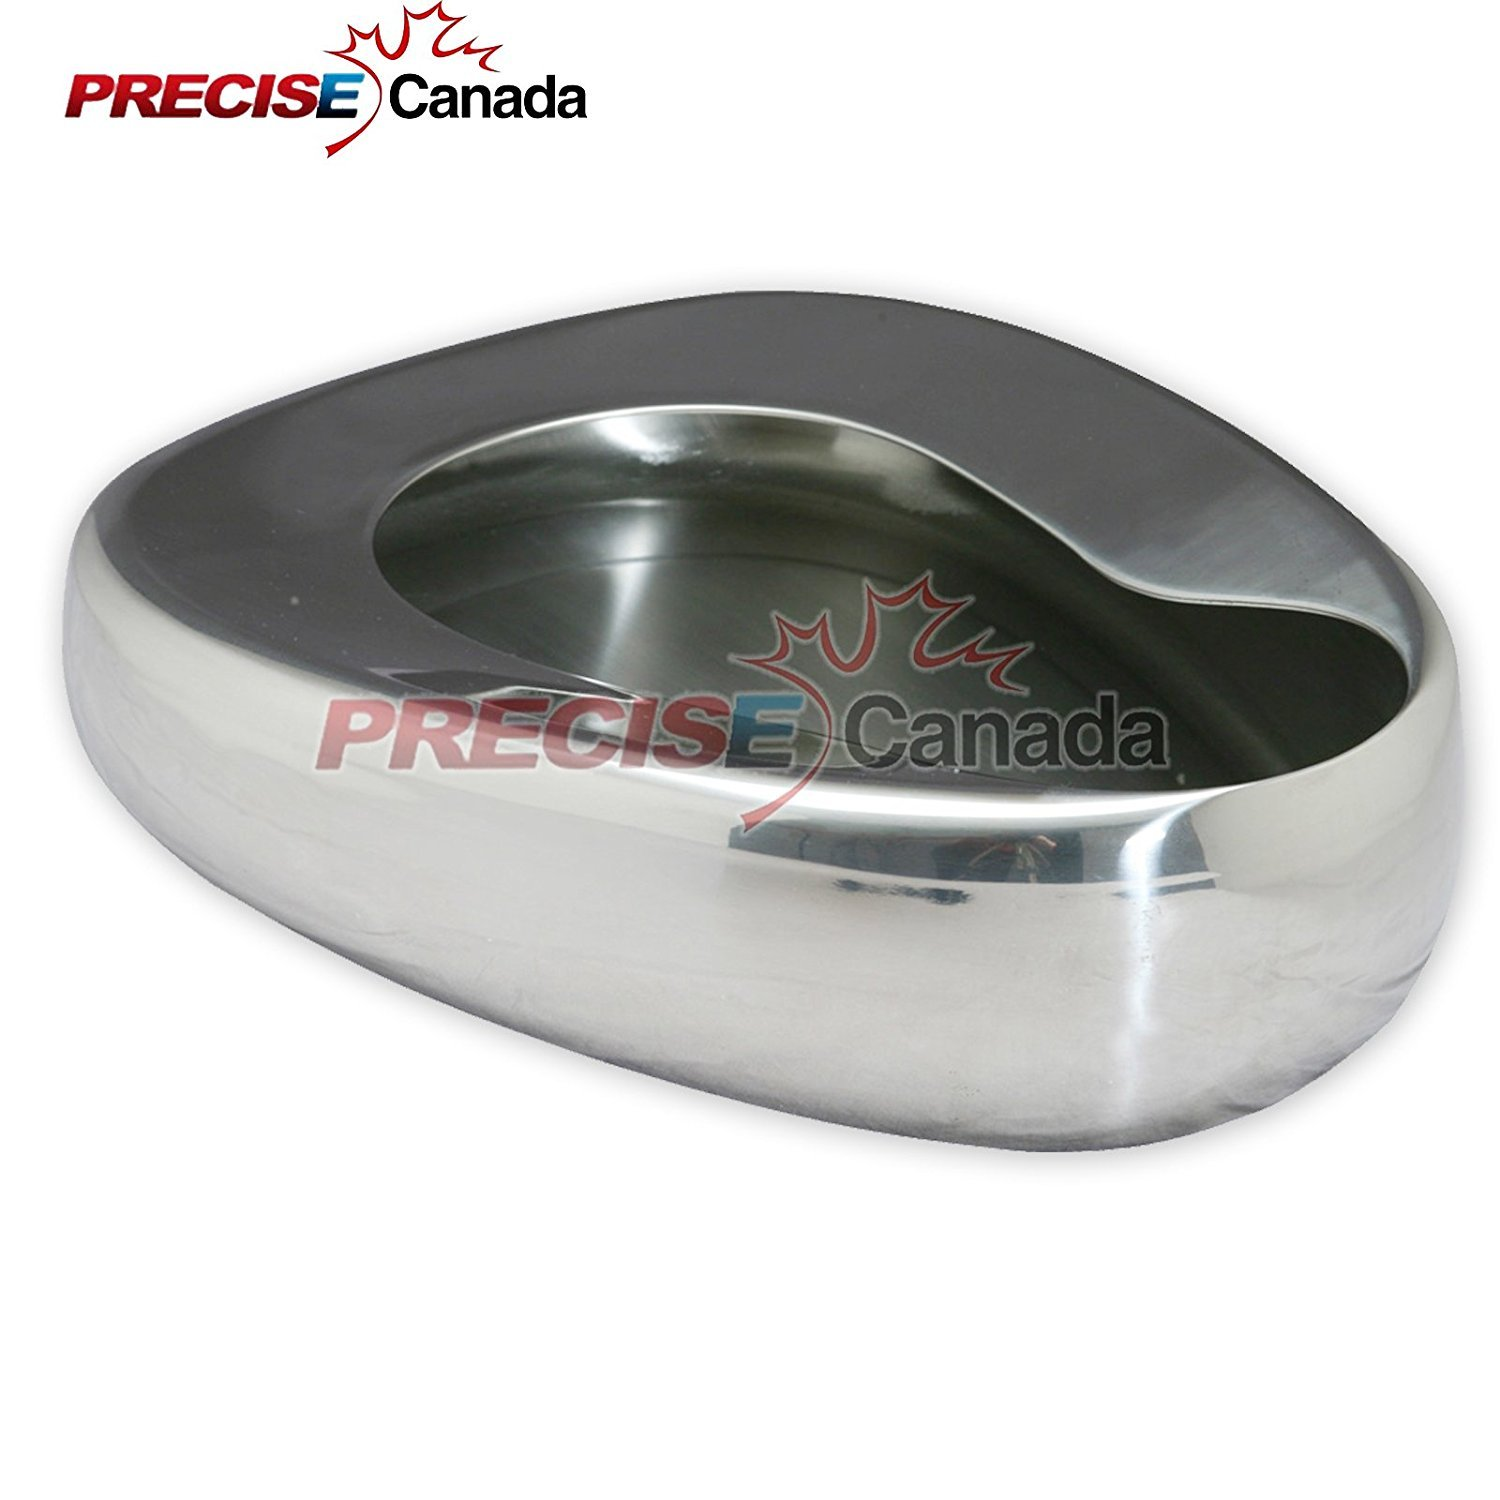 PRECISE CANADA: STAINLESS STEEL BED PAN NEW by PRECISE CANADA